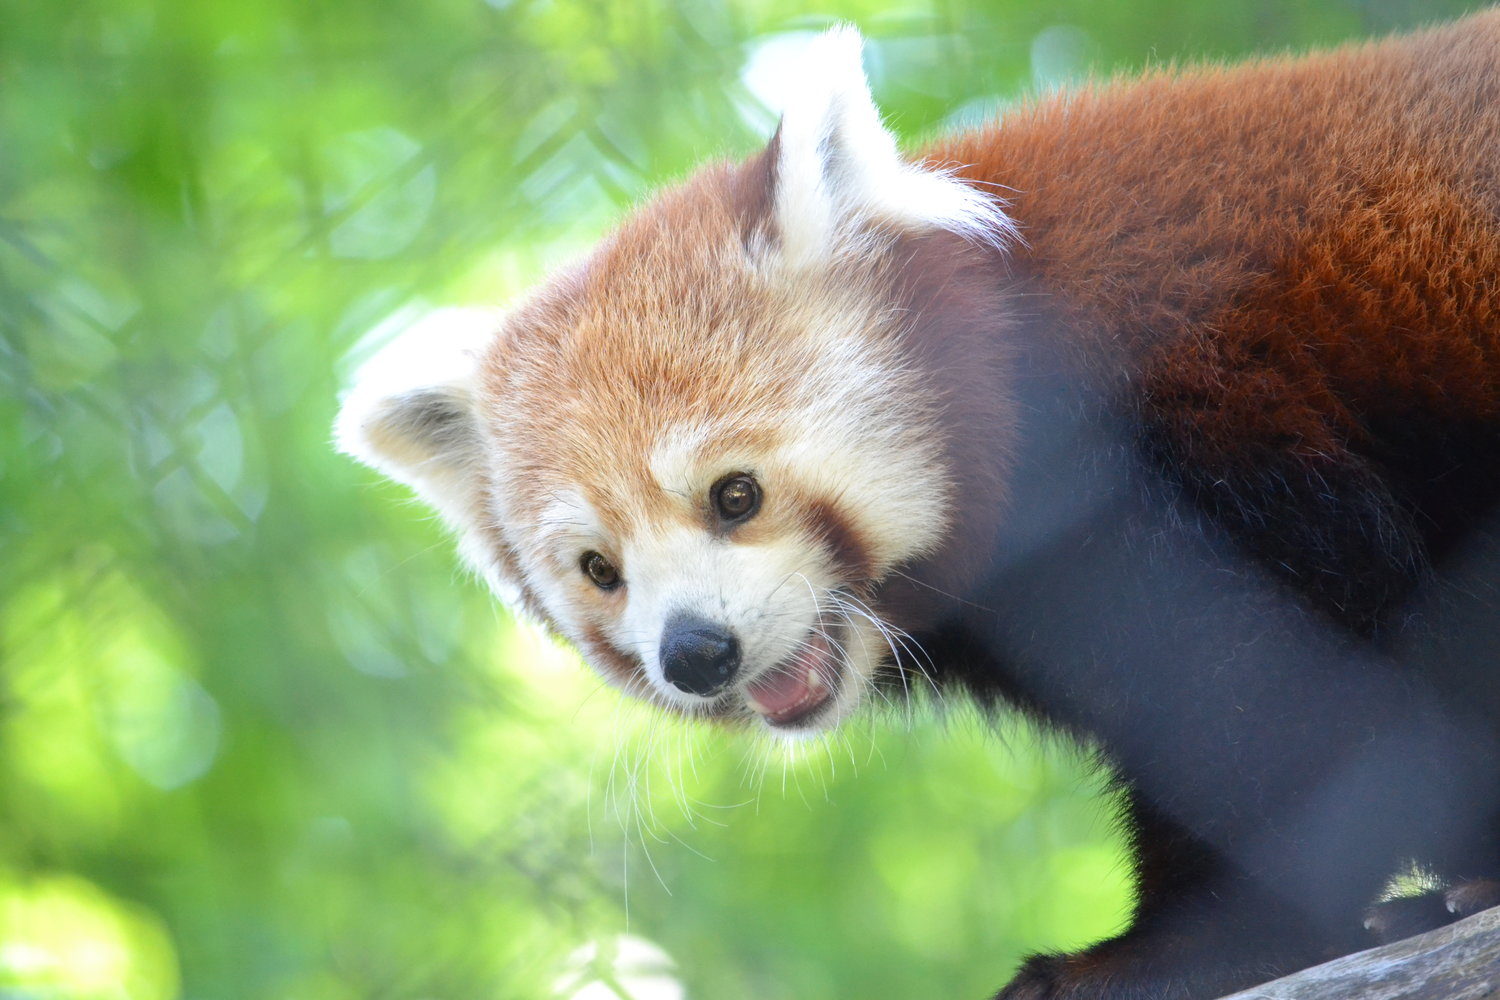 Doofah was recommended to mate with Potter Park's female red panda, Maliha, by the animal experts at the Association of Zoos and Aquariums.